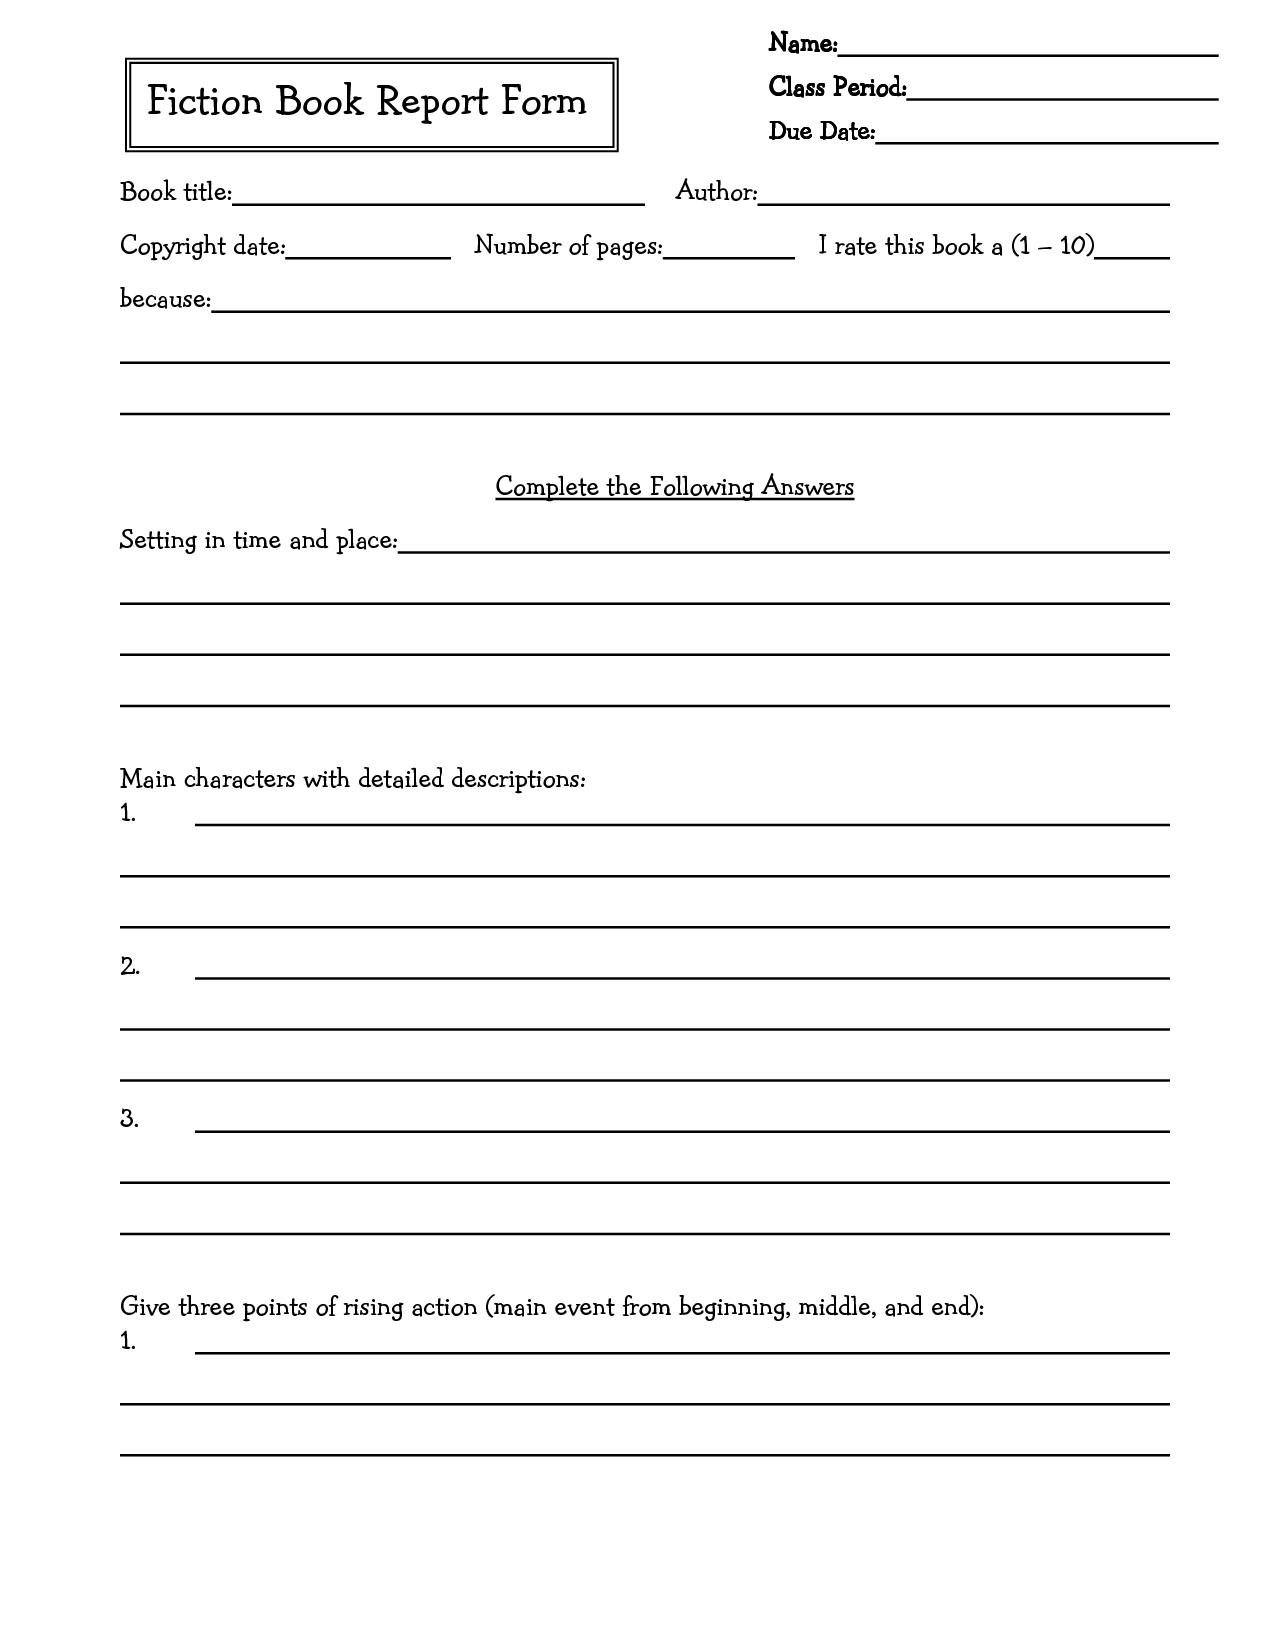 6th grade book report Book report form for 1st through 3rd graders having kids complete book reports is just one of the ways we can check if they are understanding what they are reading i created this free 1st grade through 3rd grade book report to make it fun and easy to see how my child is doing.